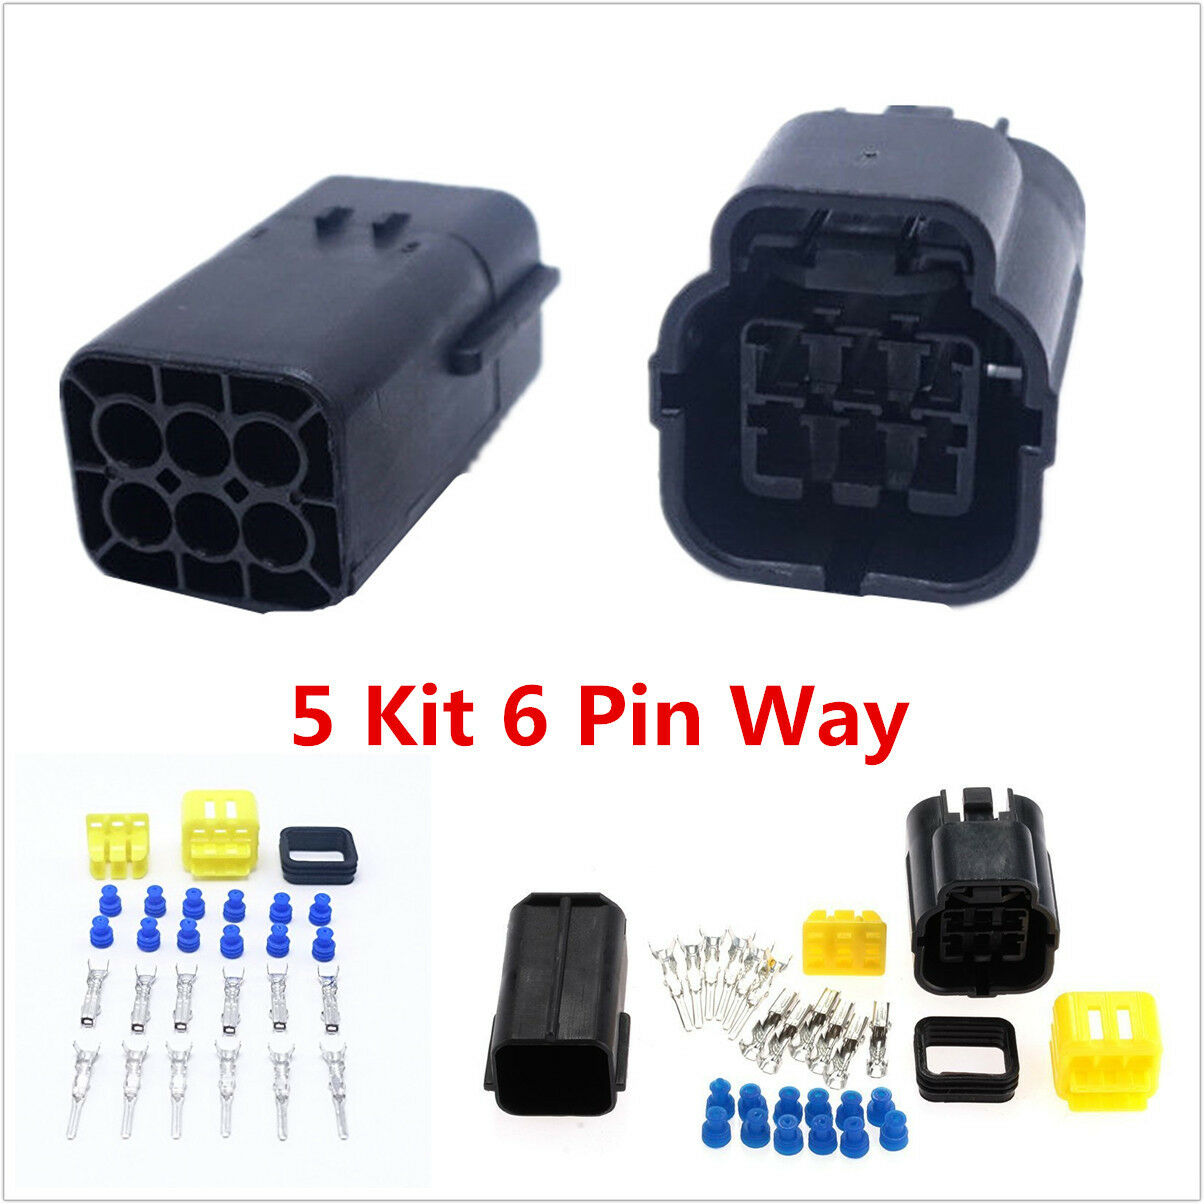 Autos 5 Kit 6 Pin Way Waterproof Electrical Wire Connector Plug ...